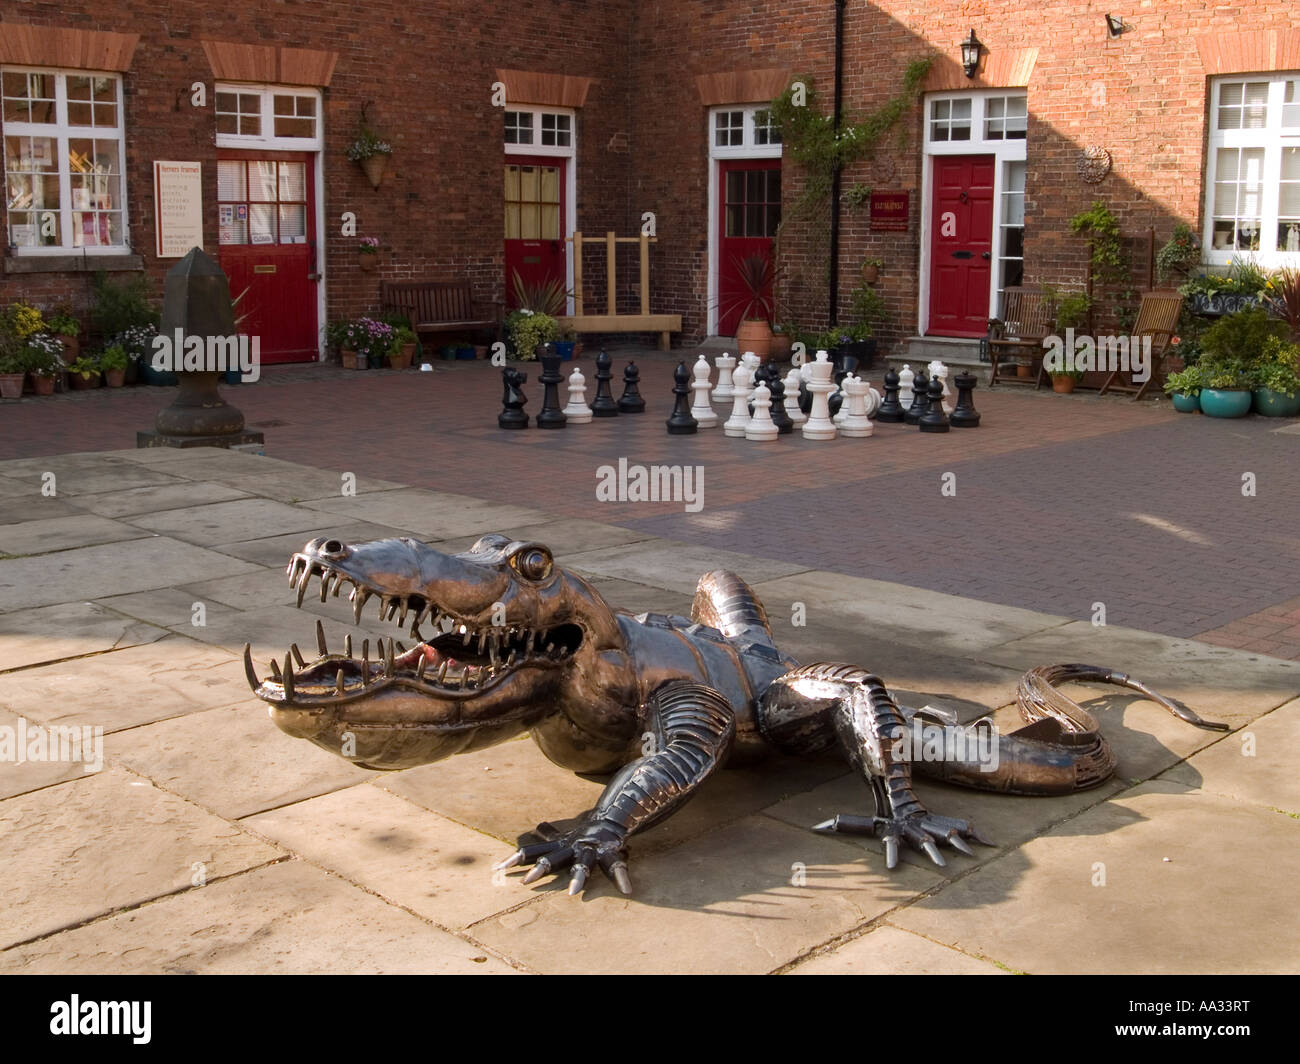 A Metal Alligator At The Ferrers Centre For Arts Crafts